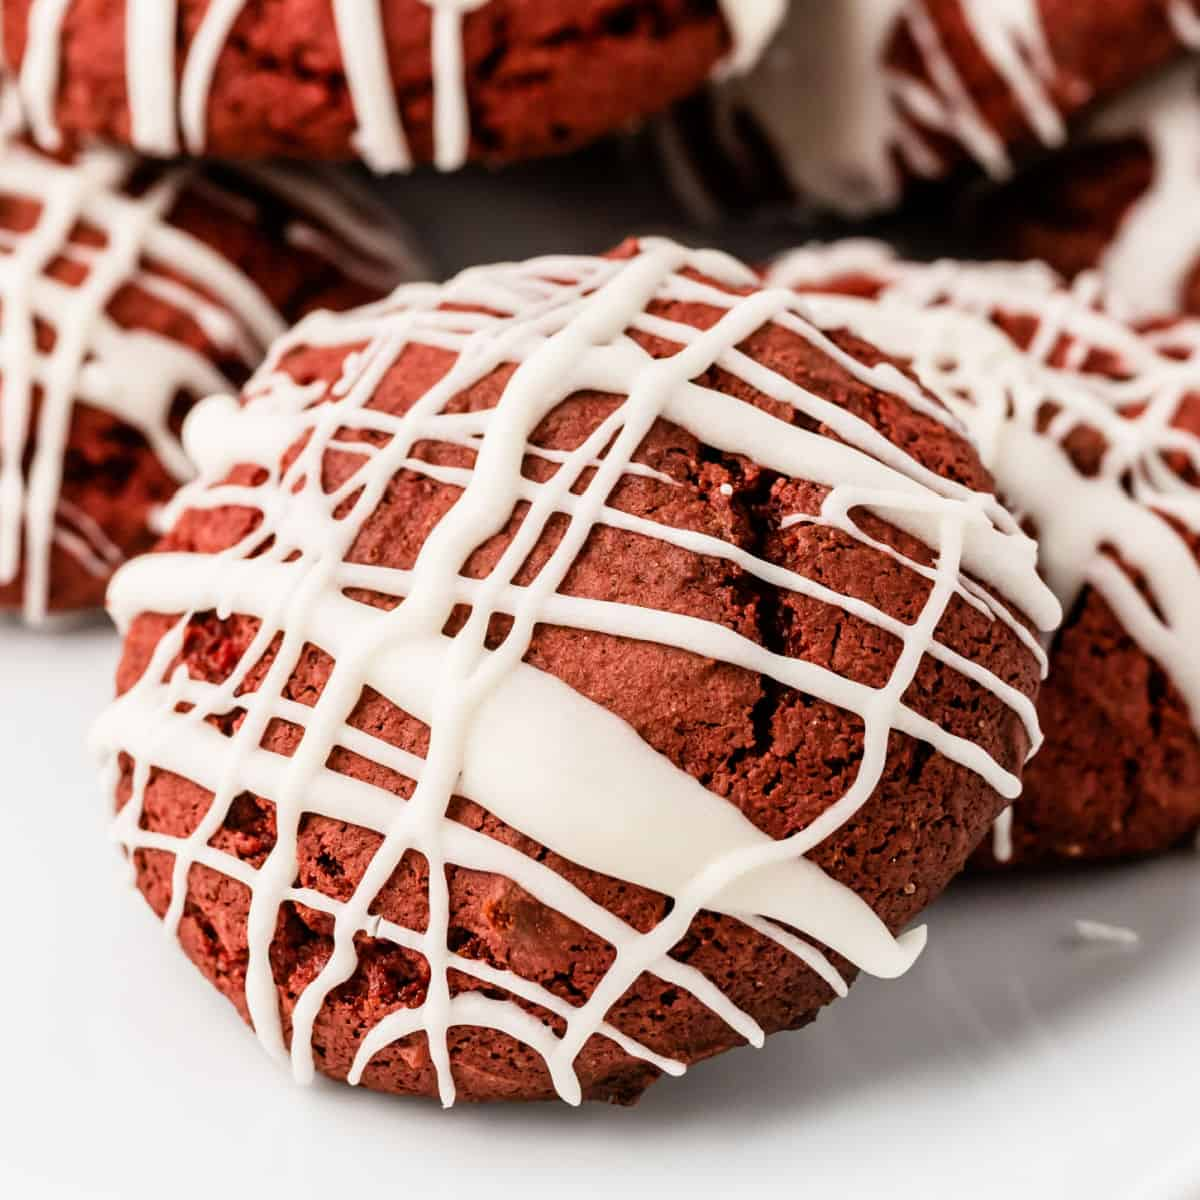 square close up image of a cake mix red velvet cookie